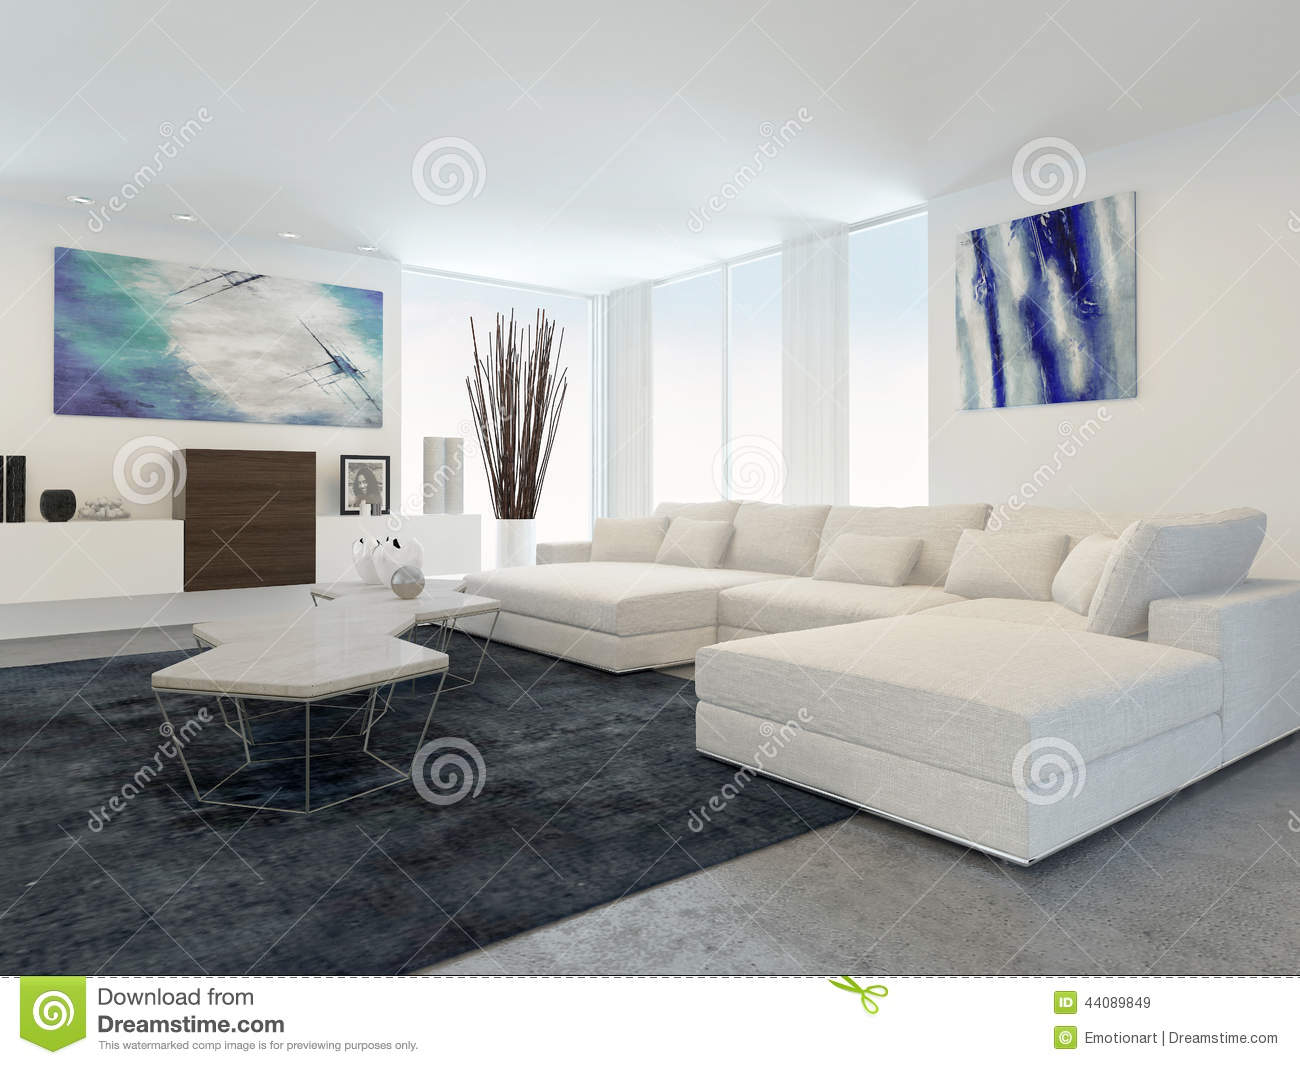 Salon moderne meuble blanc pr l vement d - Meubles de salon moderne ...